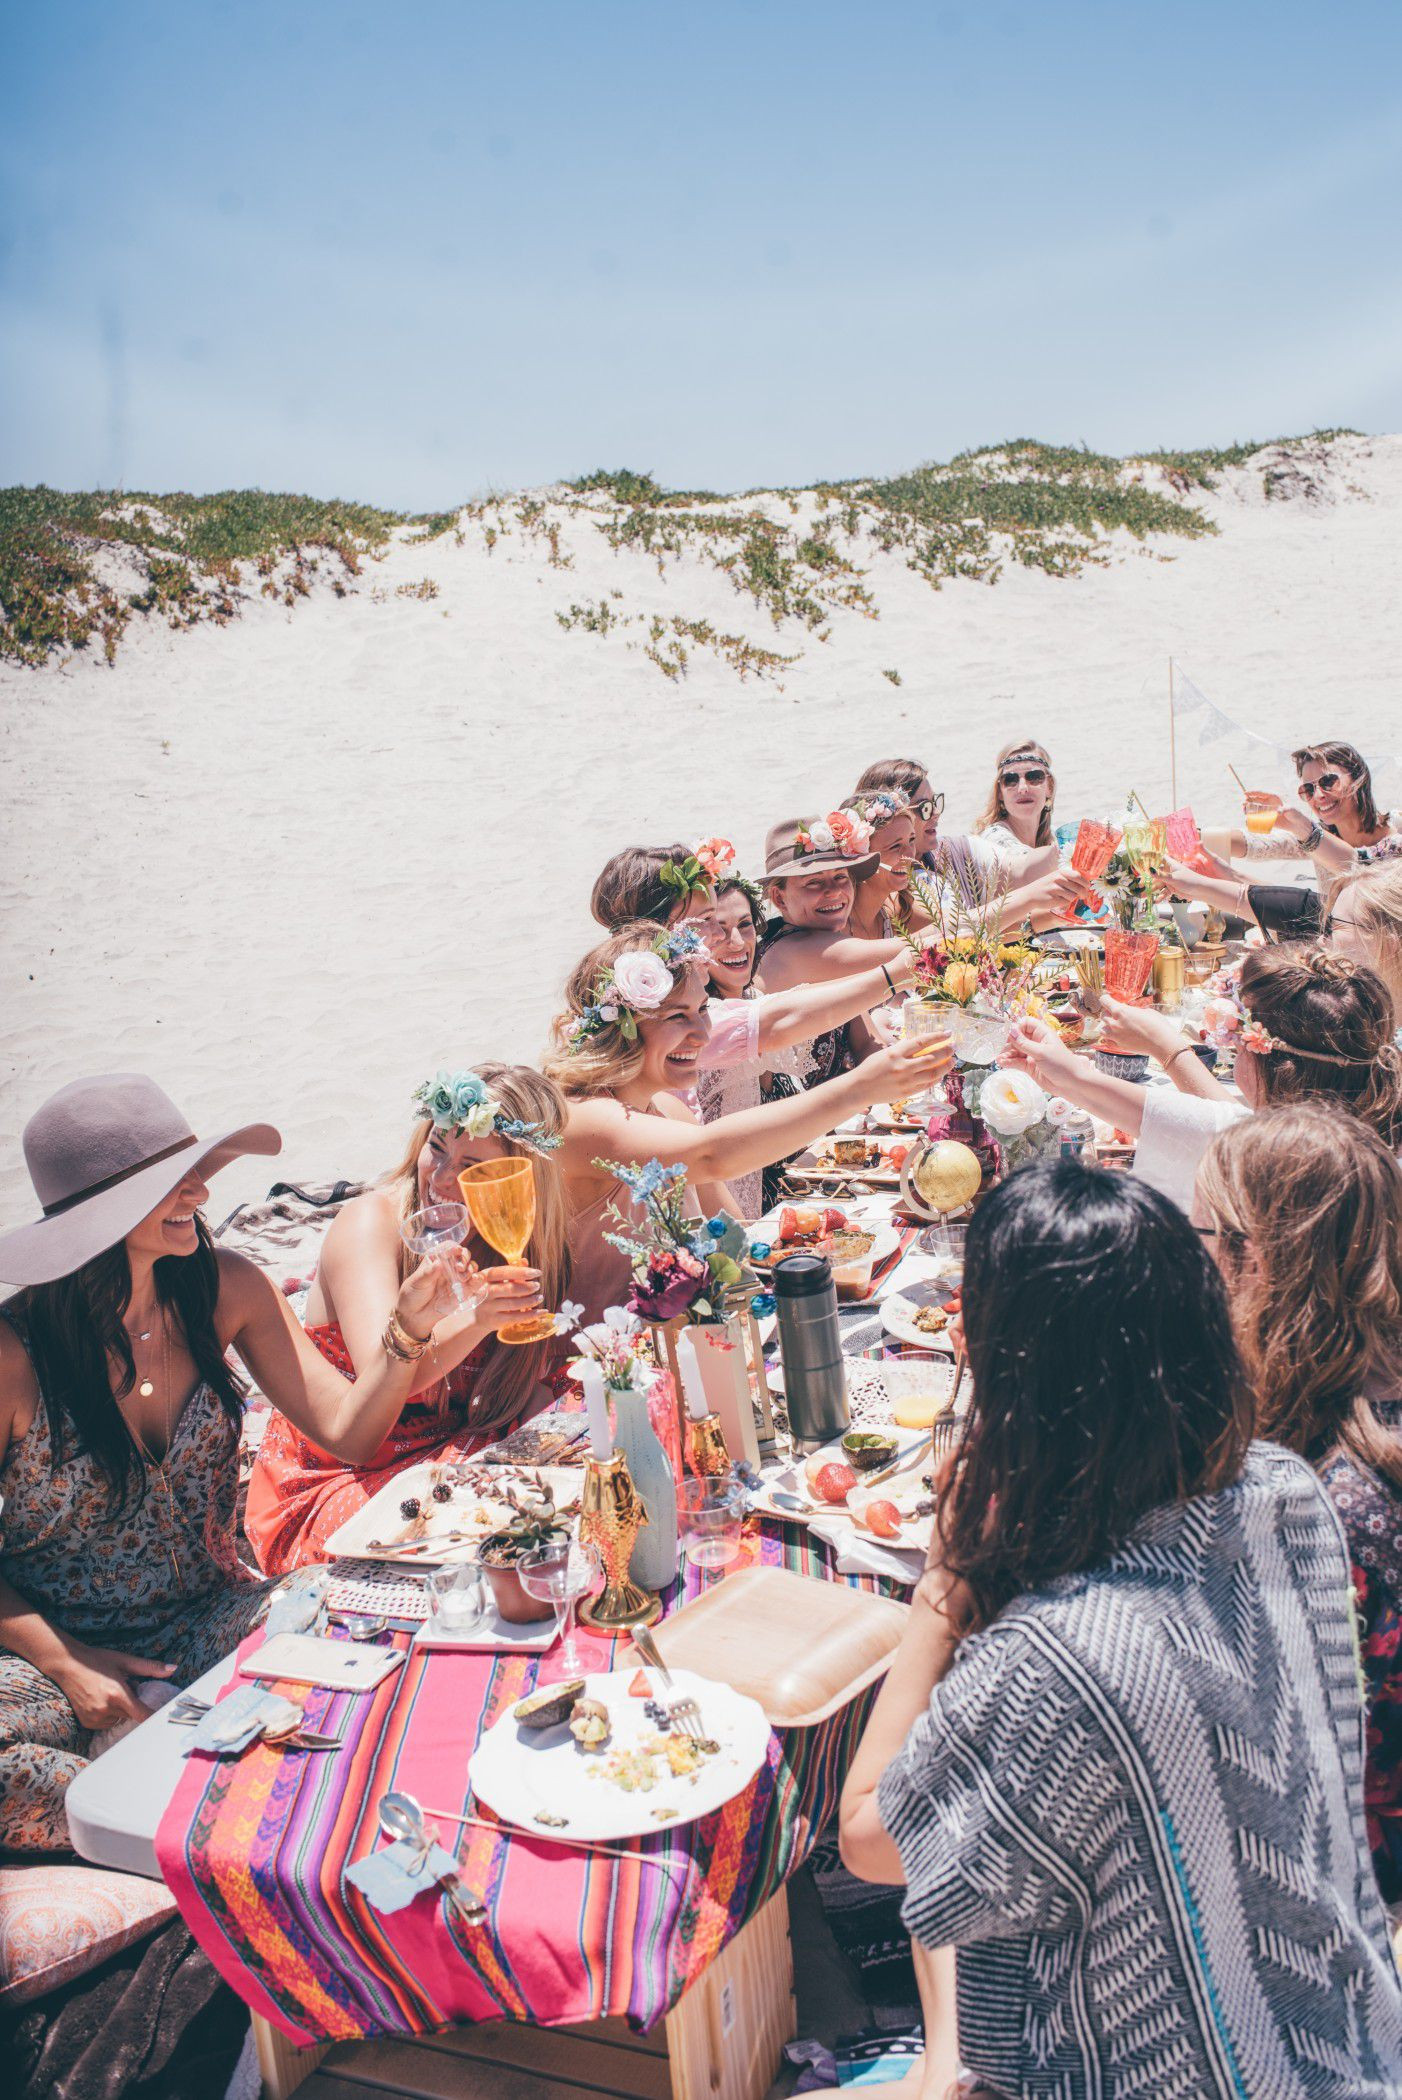 Best Beach Party Ideas  How to Throw the Best Beach Party